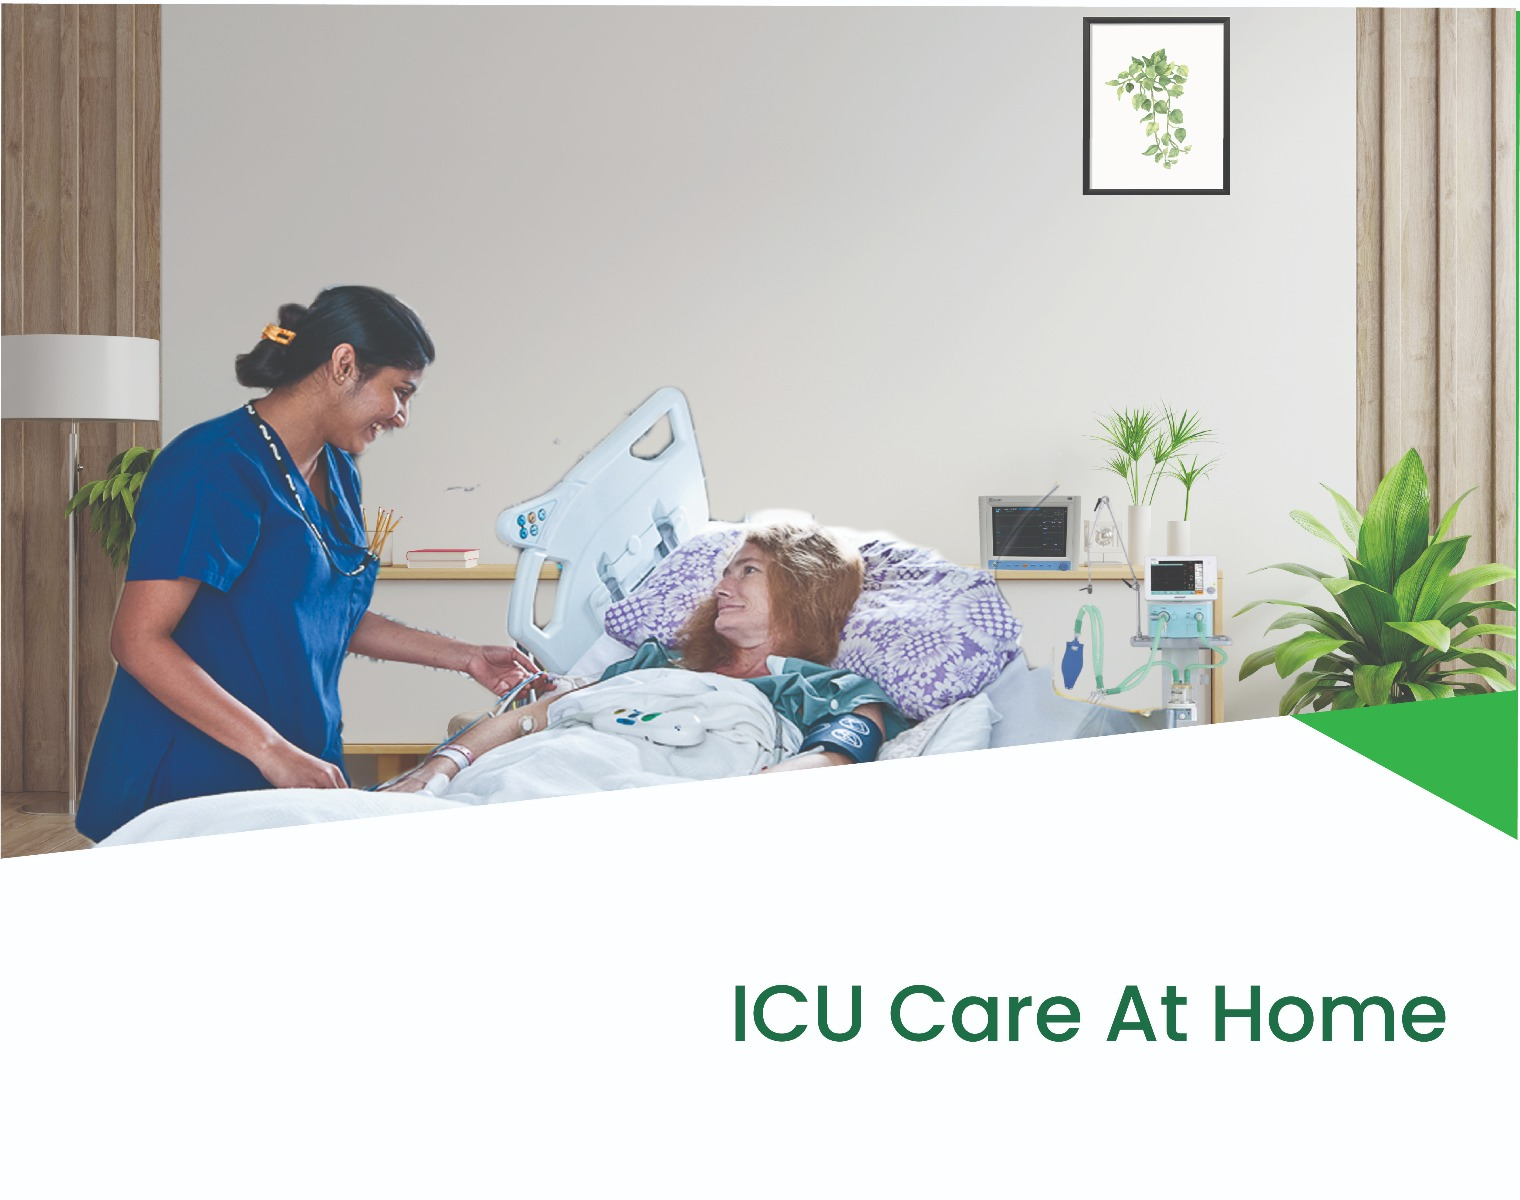 ICU_Care_at_Home_